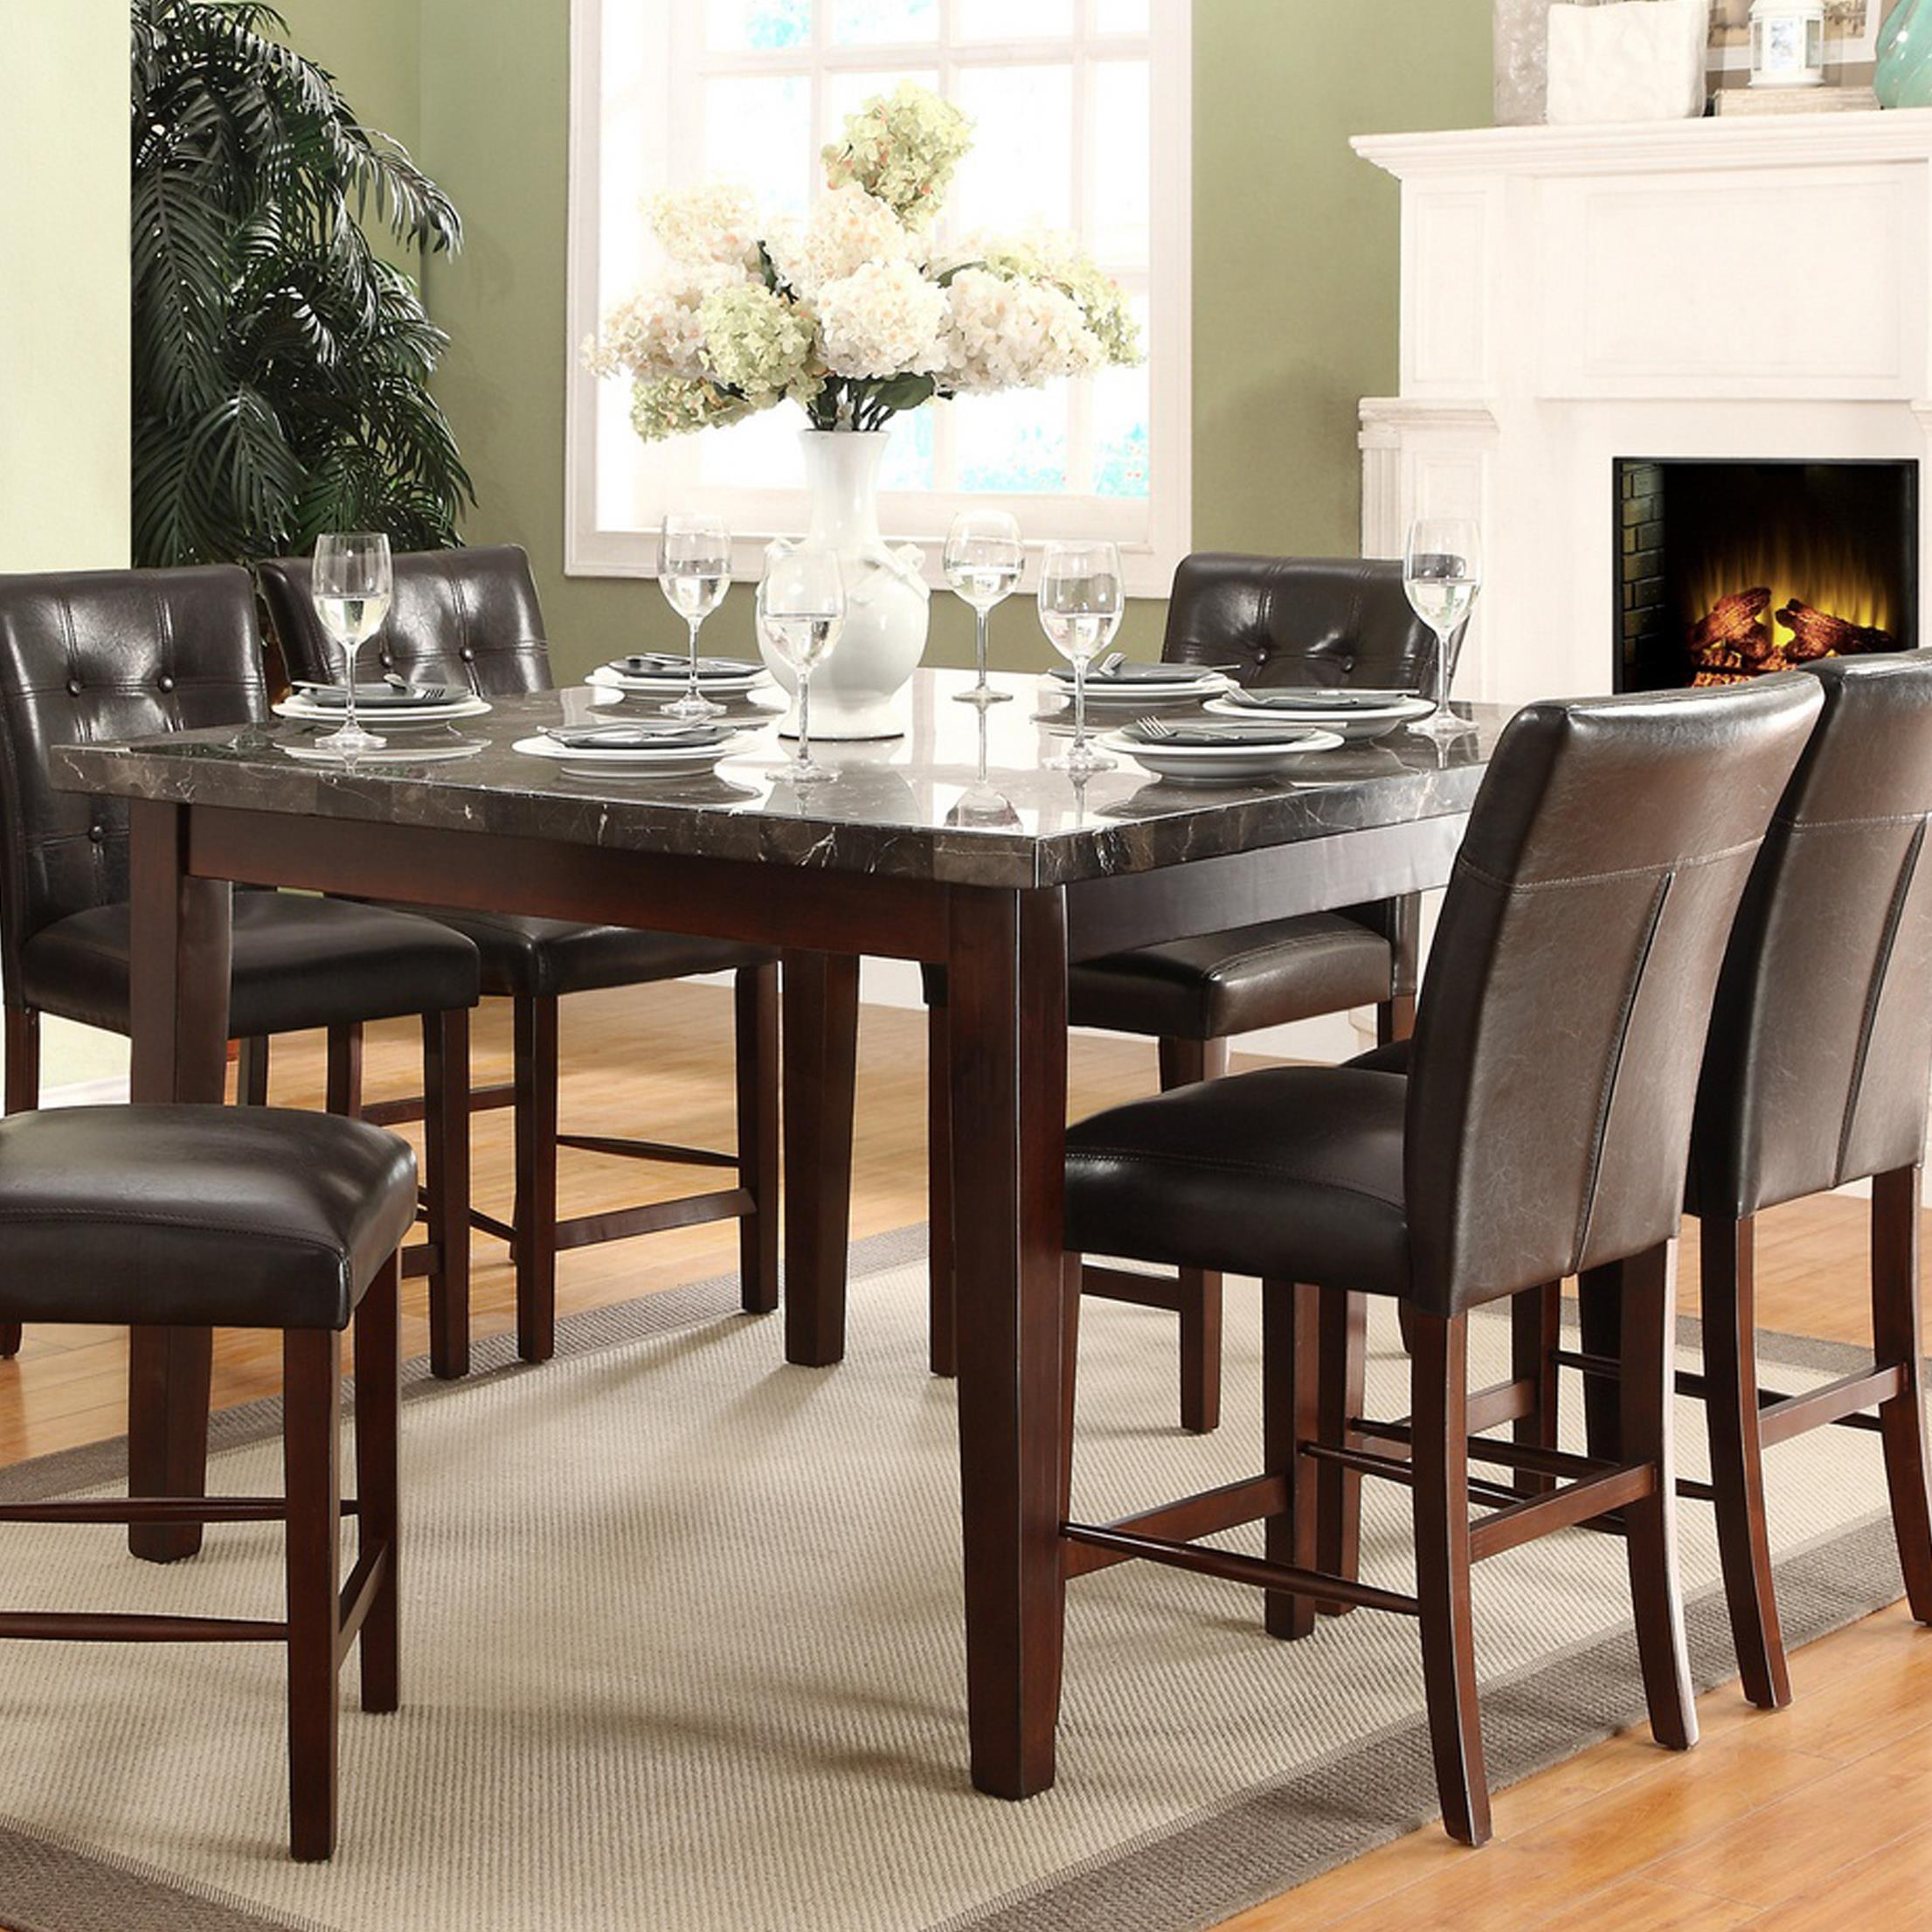 Homelegance Decatur Counter Height Dining Table With In Most Current Eduarte Counter Height Dining Tables (View 10 of 15)